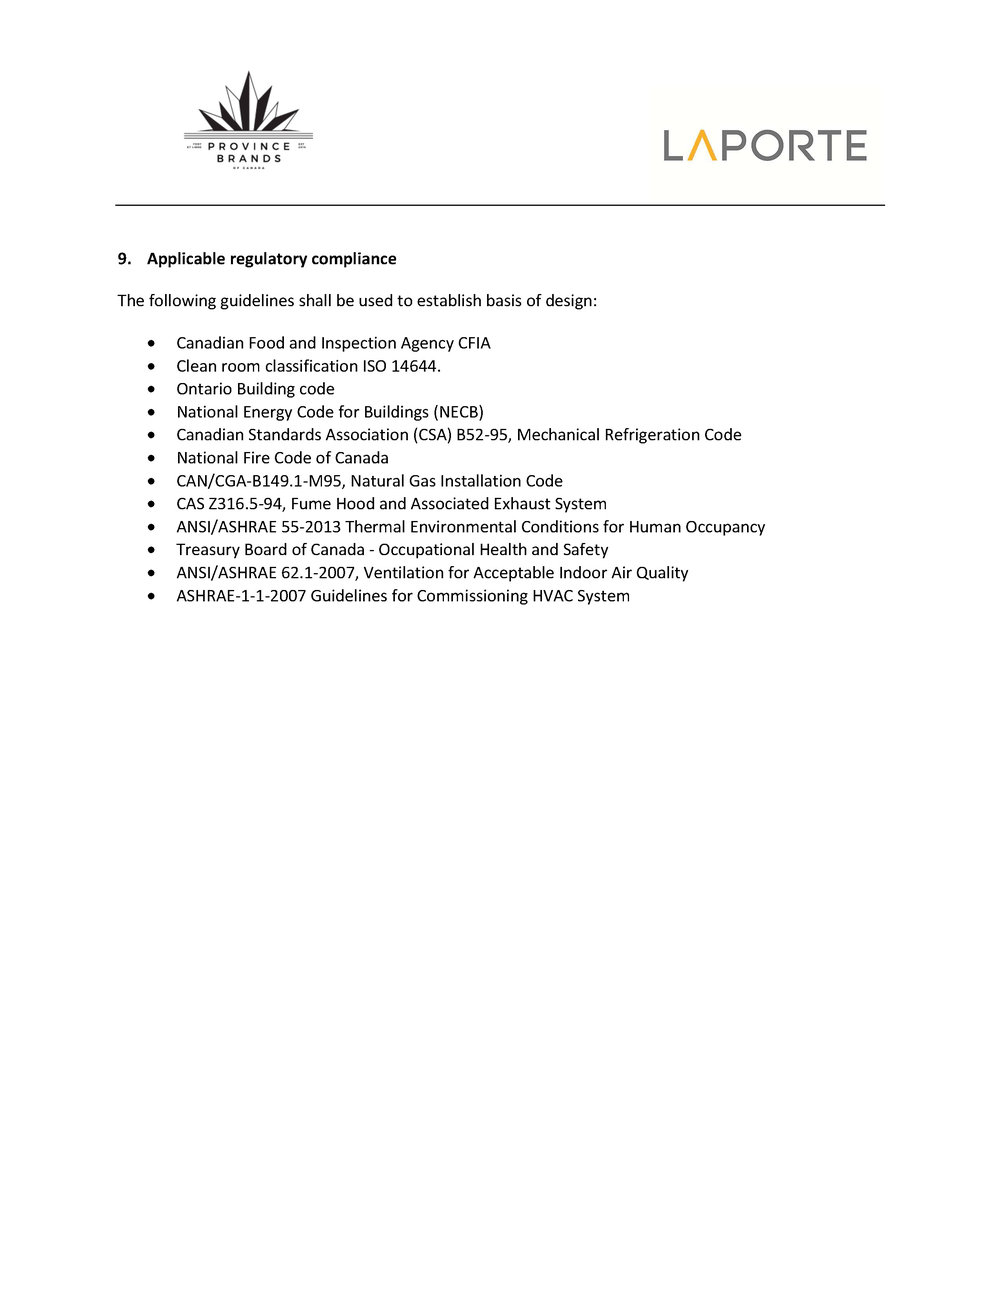 LH-PBS-01_Feasibility Study Report_01_Page_26.jpg